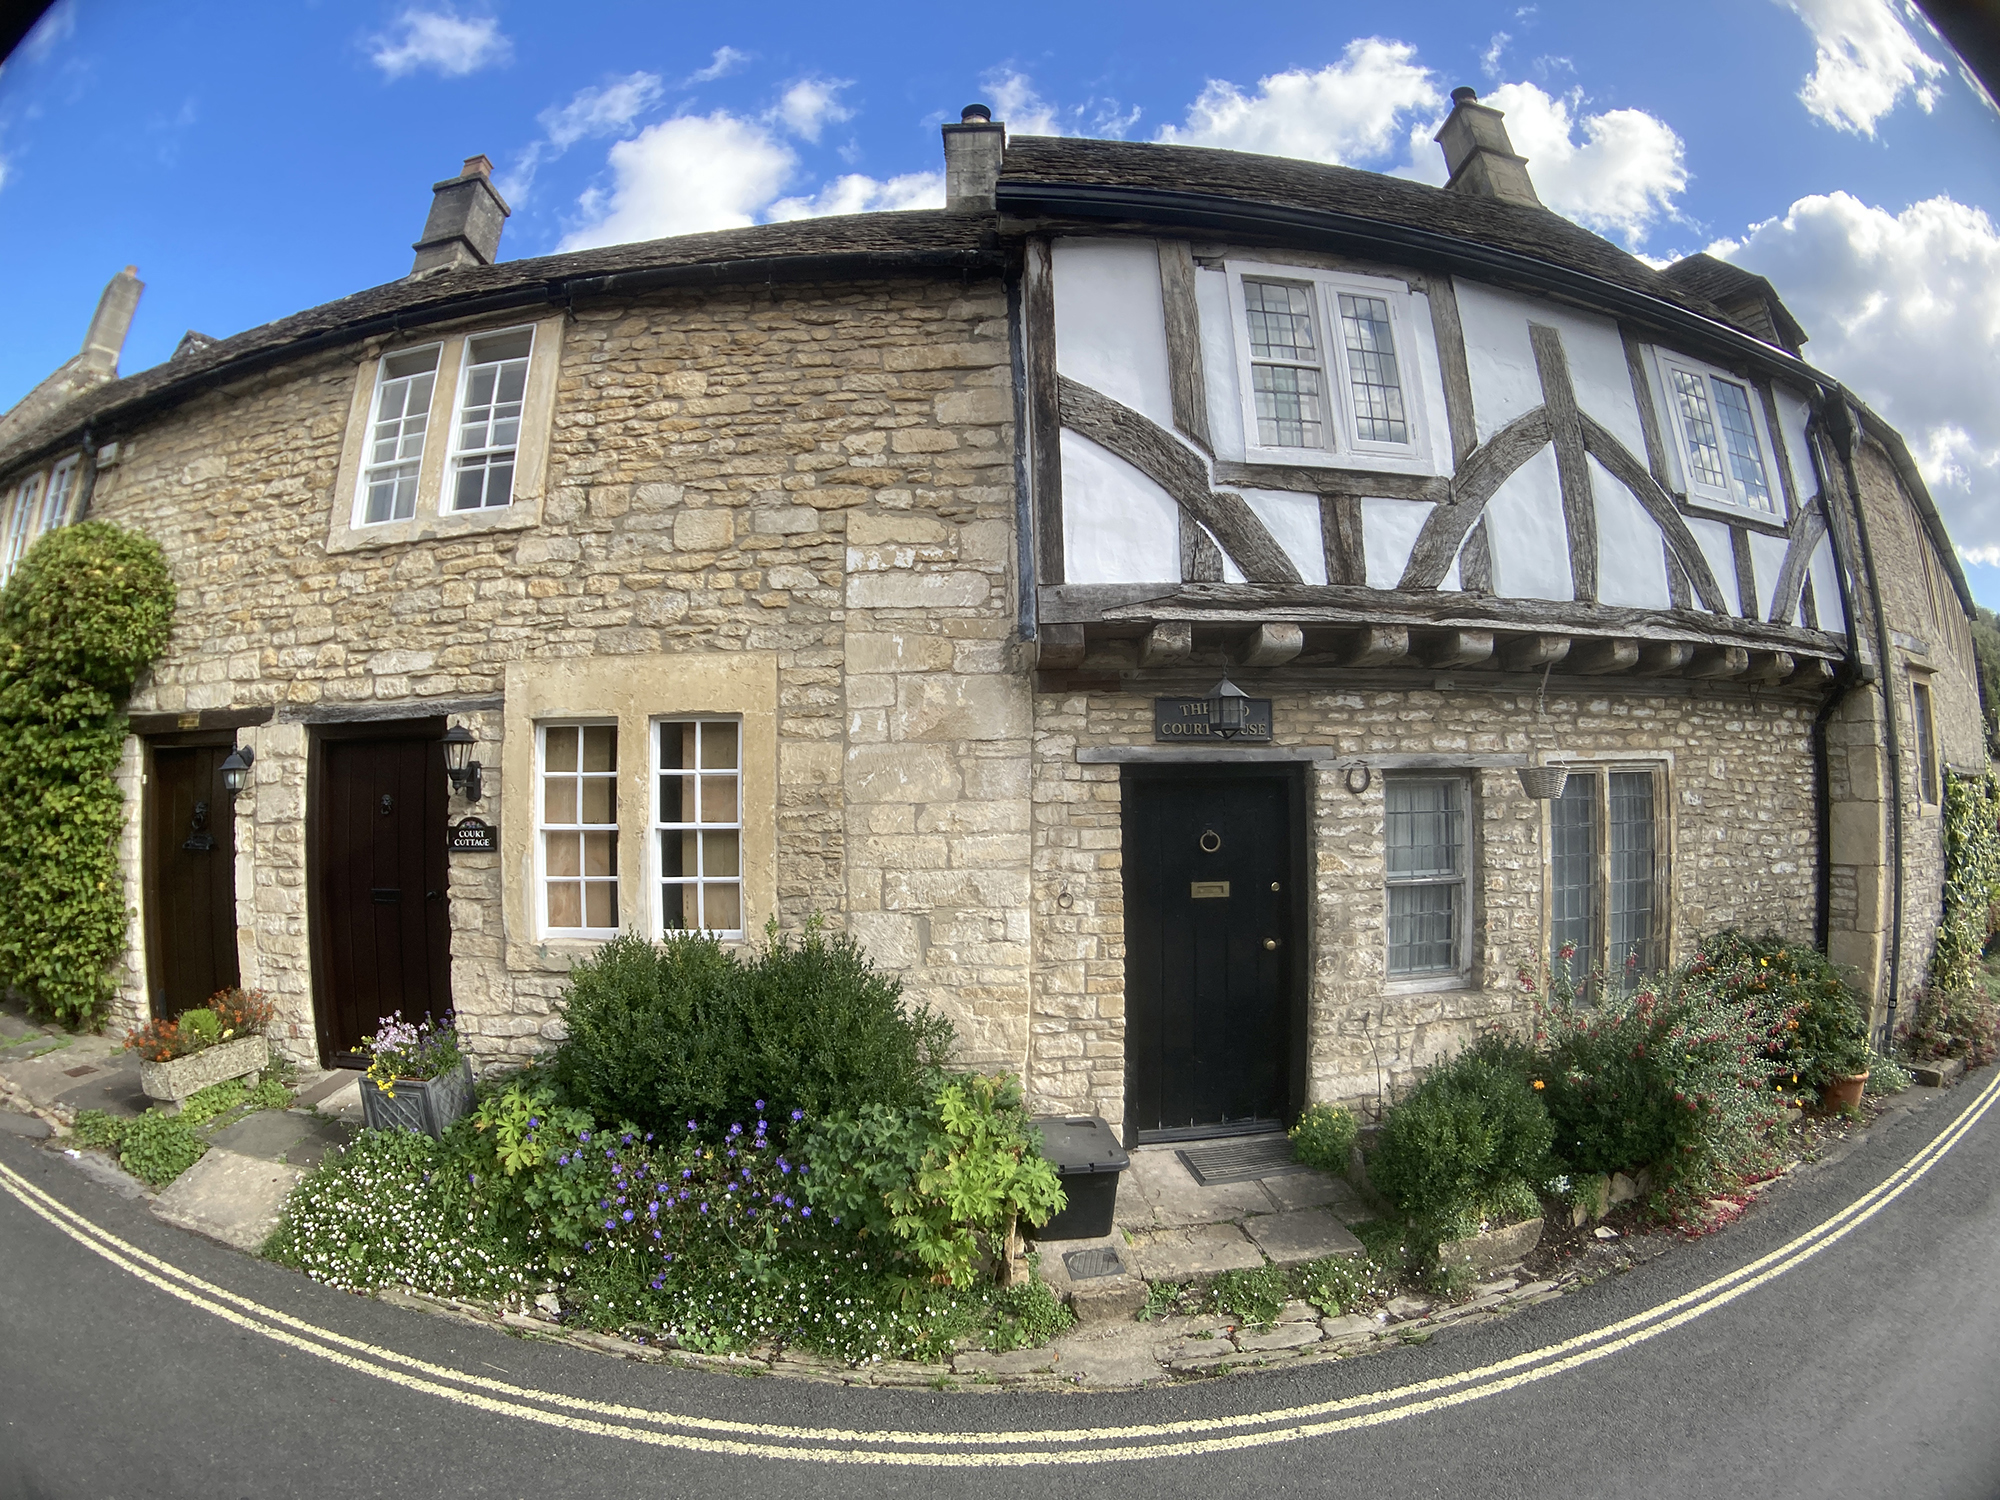 Cottages in Castle Combe, Wiltshire taken with O series Moment 170 Superfish lens